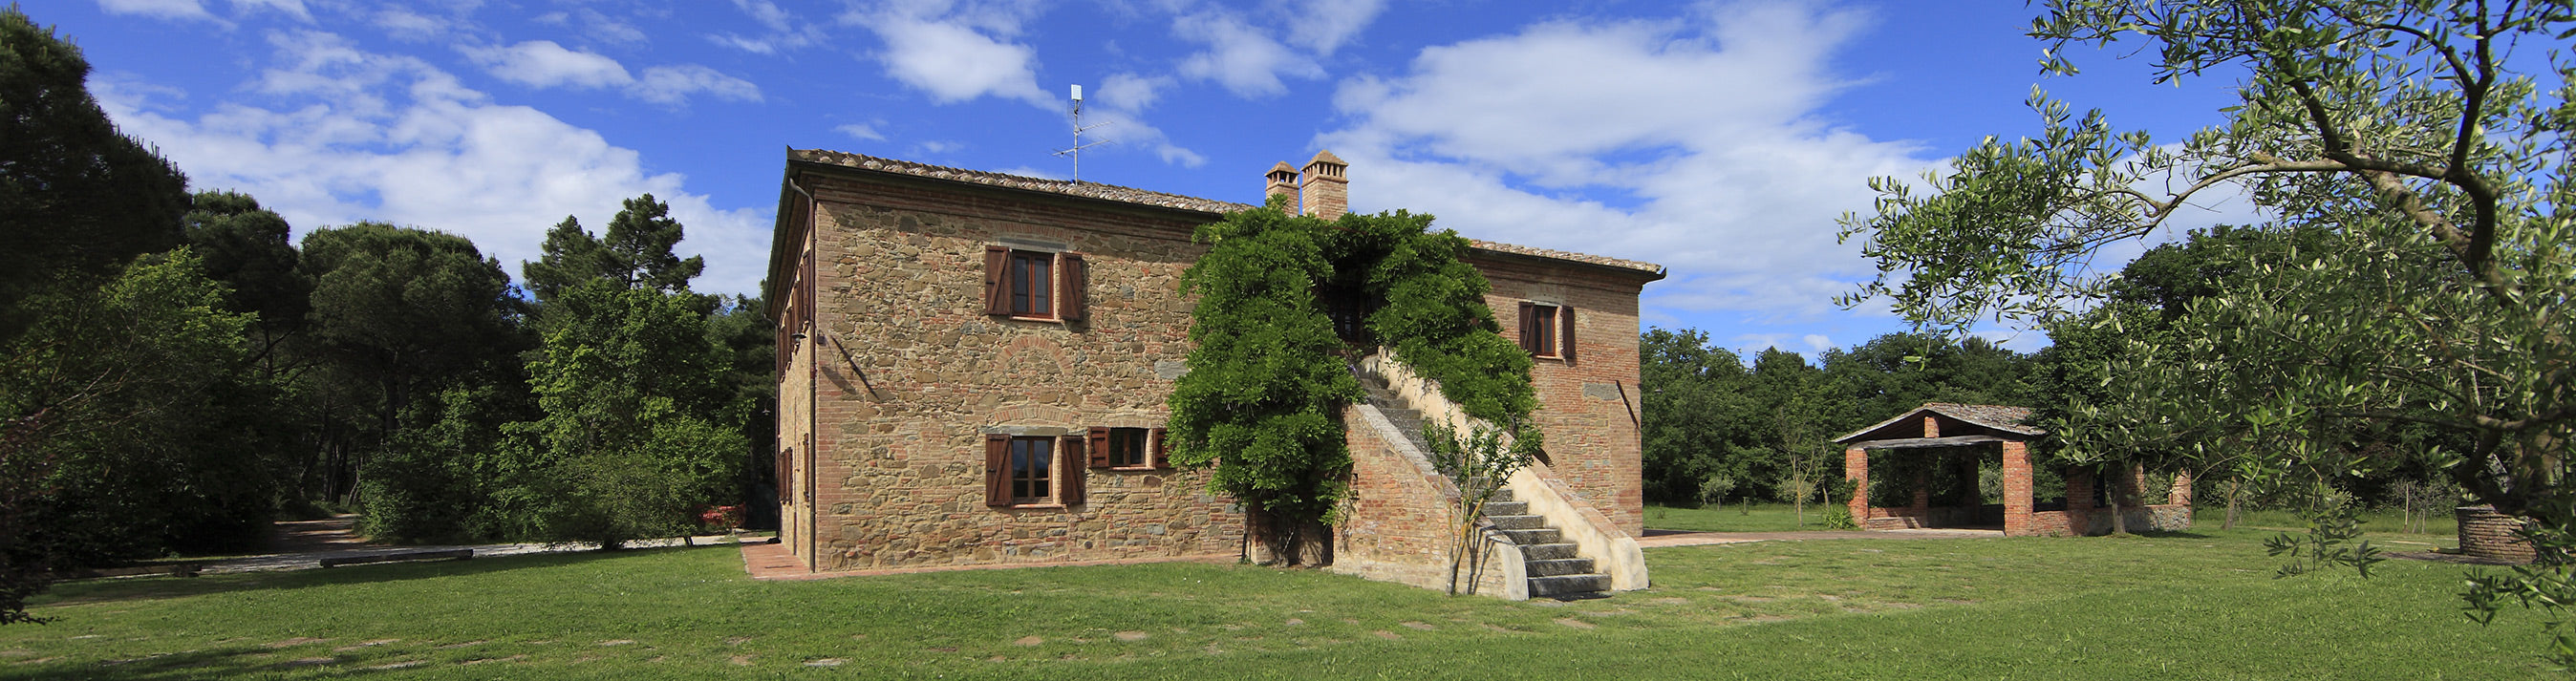 Let's discover our house, a peaceful place for your next holiday in Italy